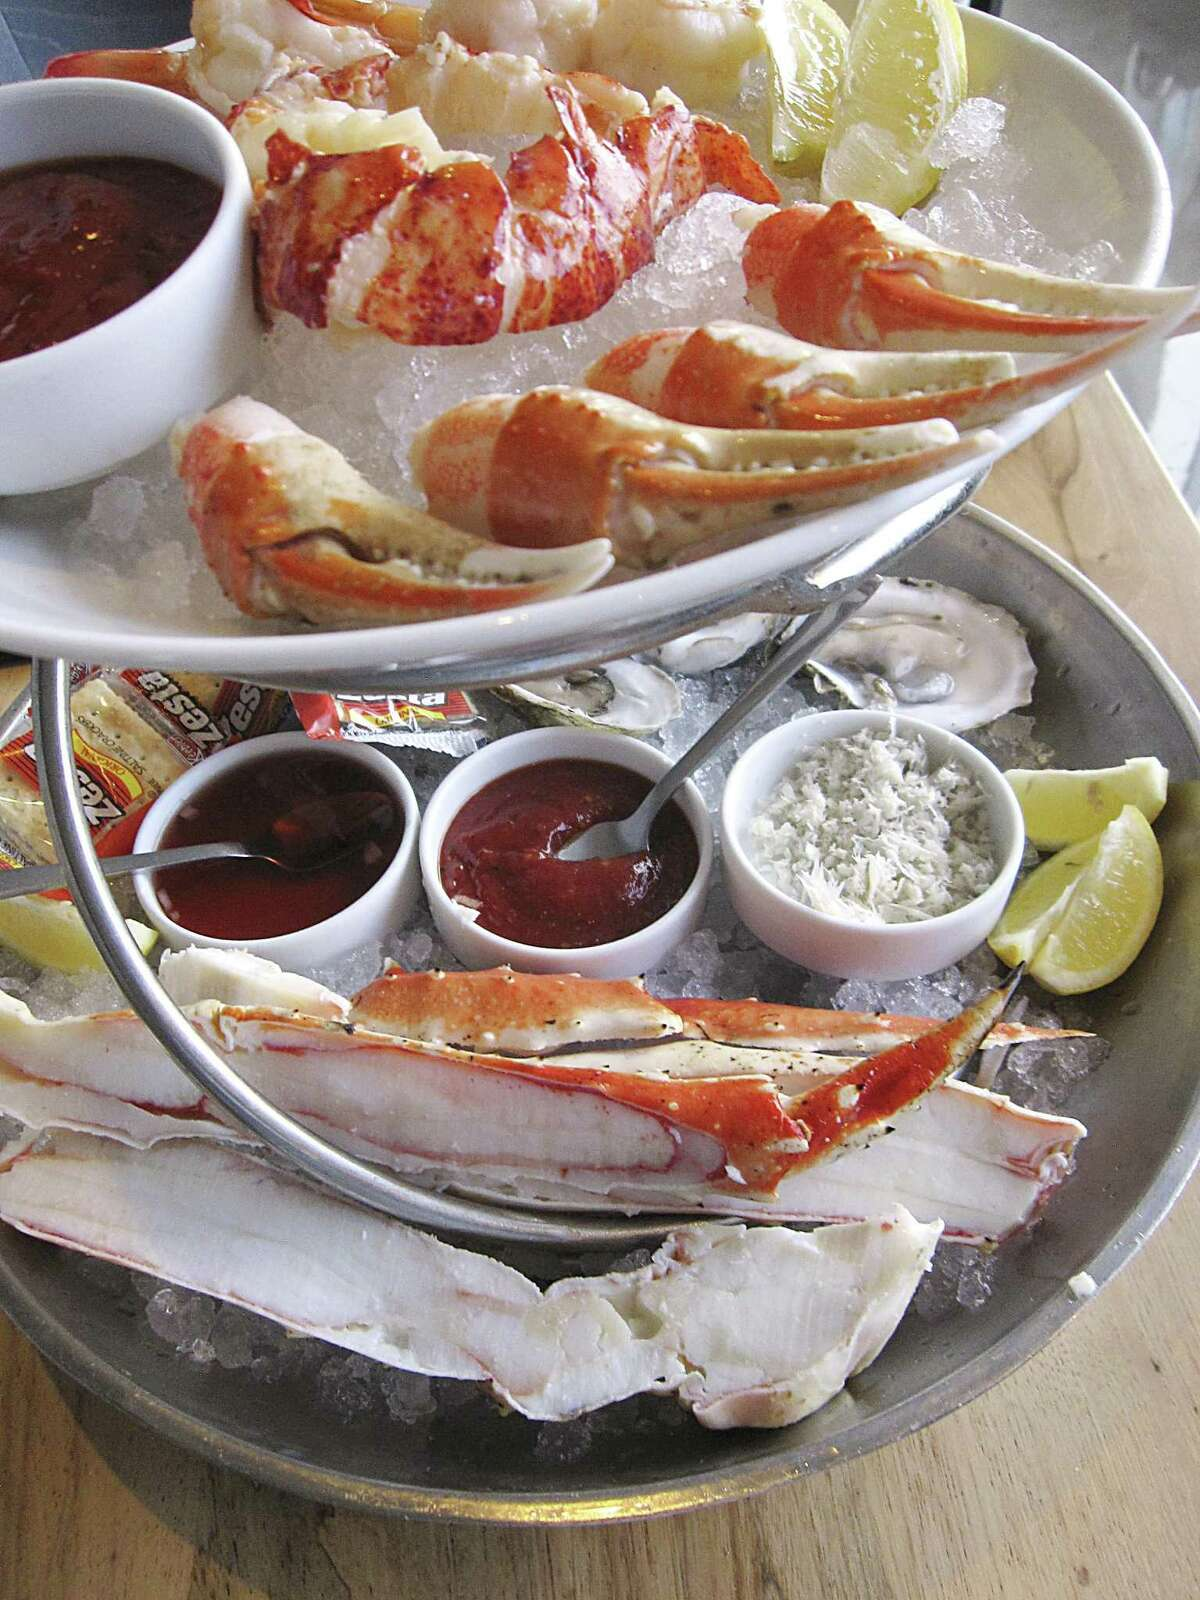 A large chilled seafood tower includes lobster, shrimp, crab claws, oysters and king crab legs at Silo Terrace Oyster Bar.